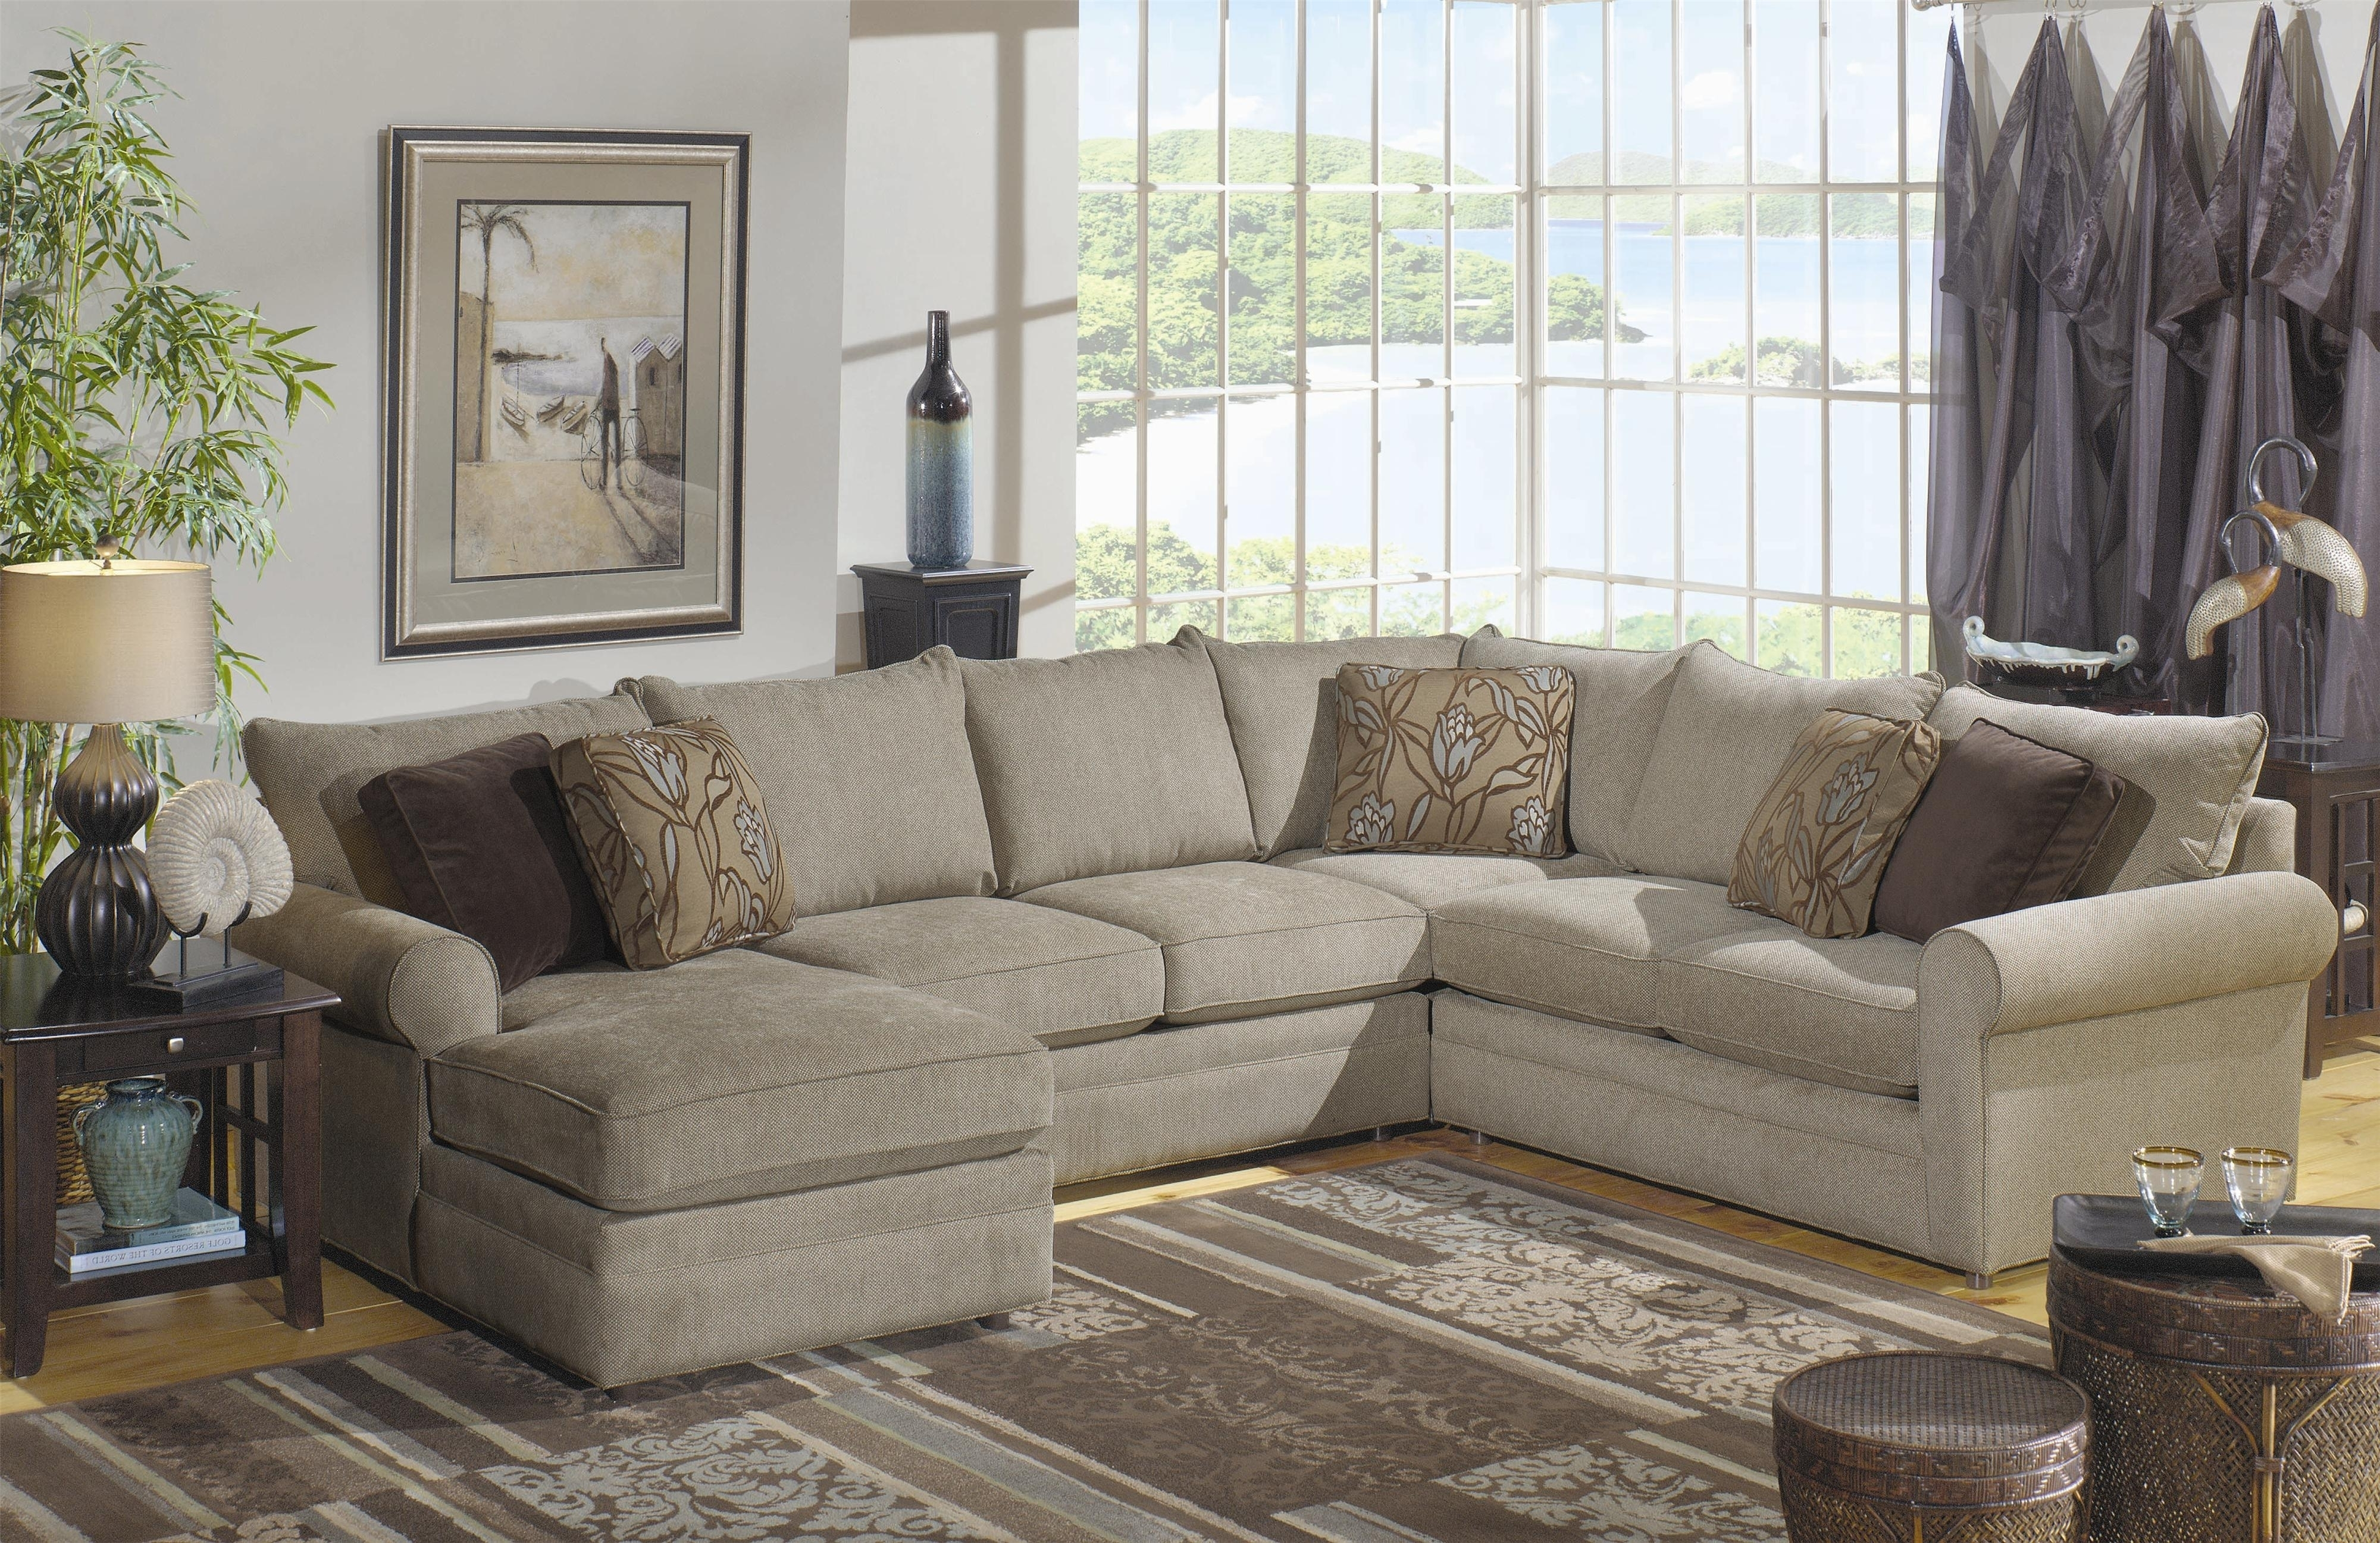 Gallery Craftsman Sectional Sofa - Mediasupload within Craftsman Sectional Sofas (Image 7 of 10)